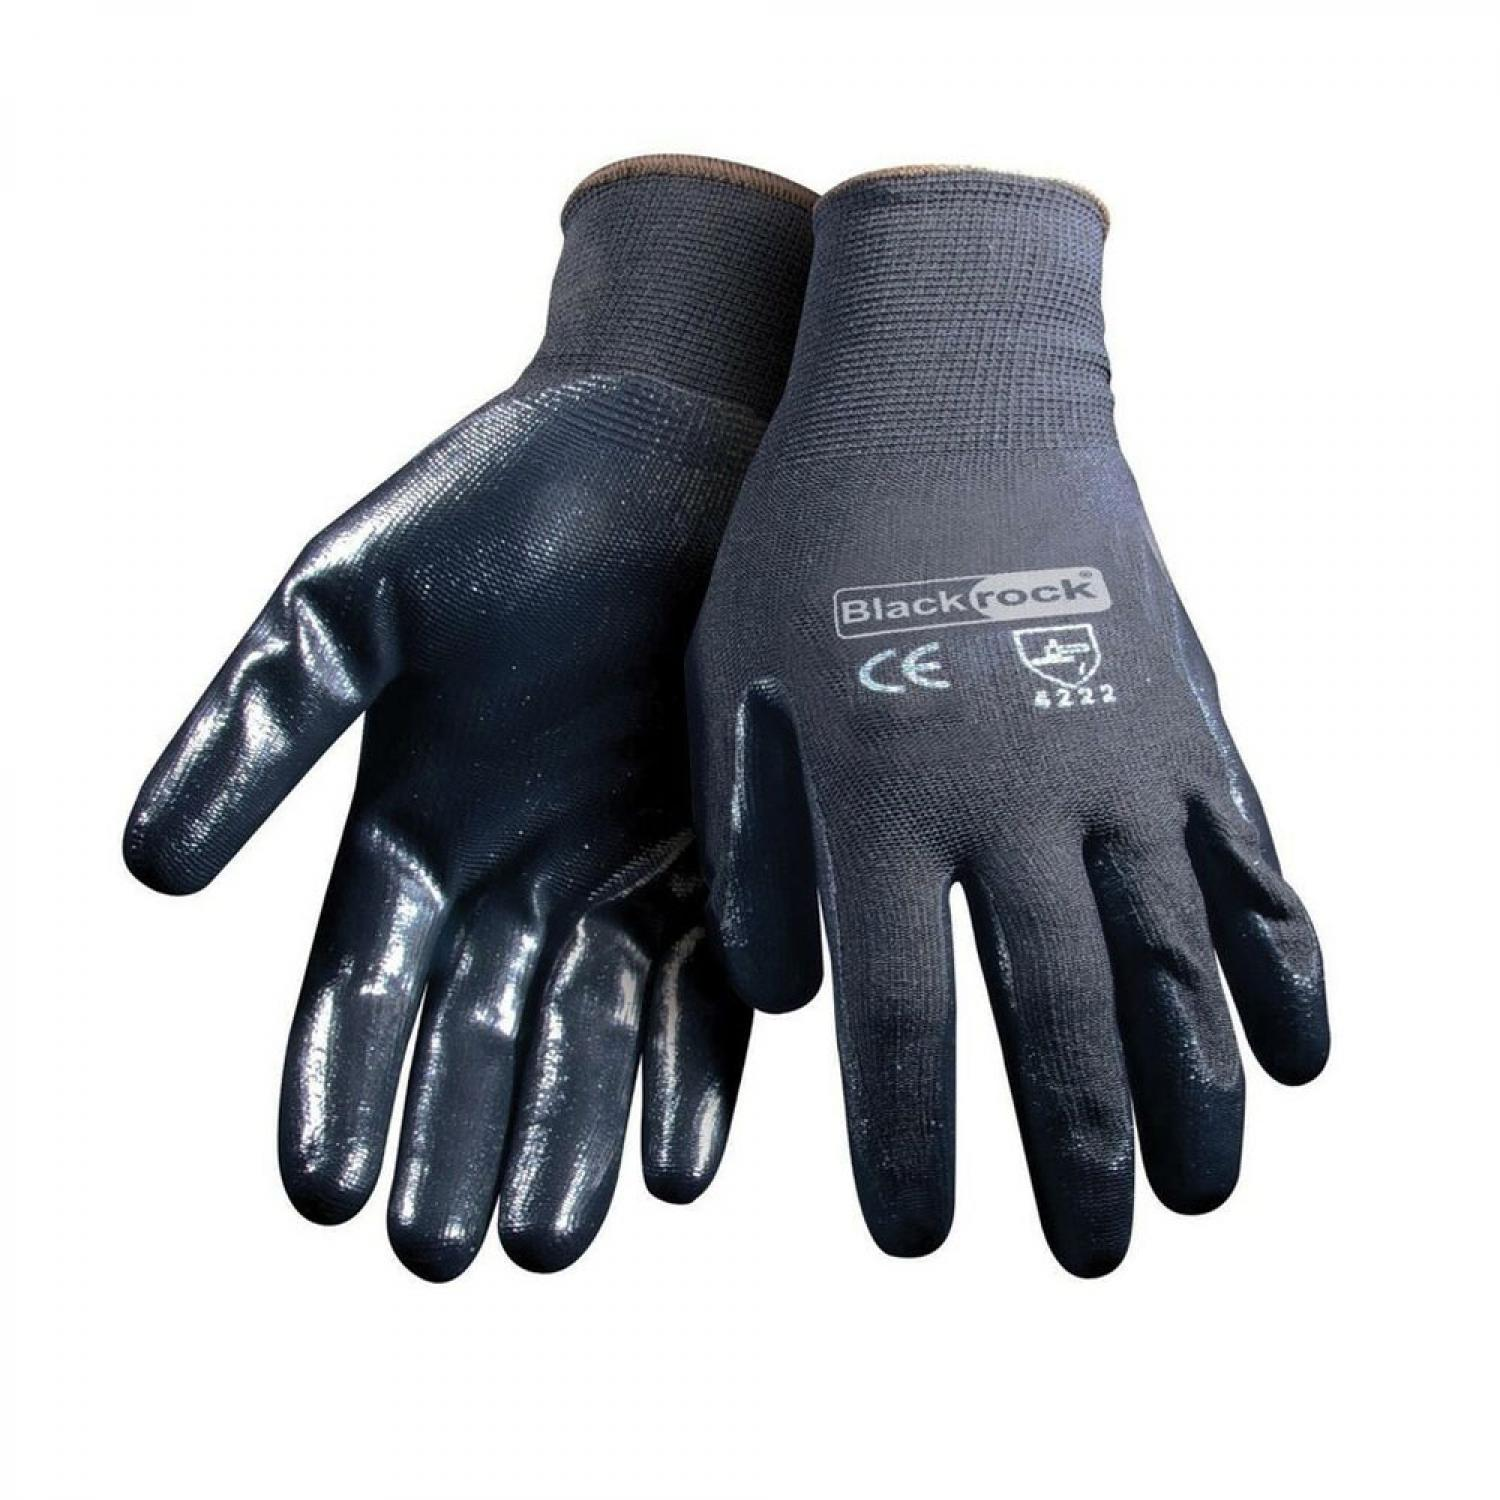 Blackrock Lightweight Gripper Gloves